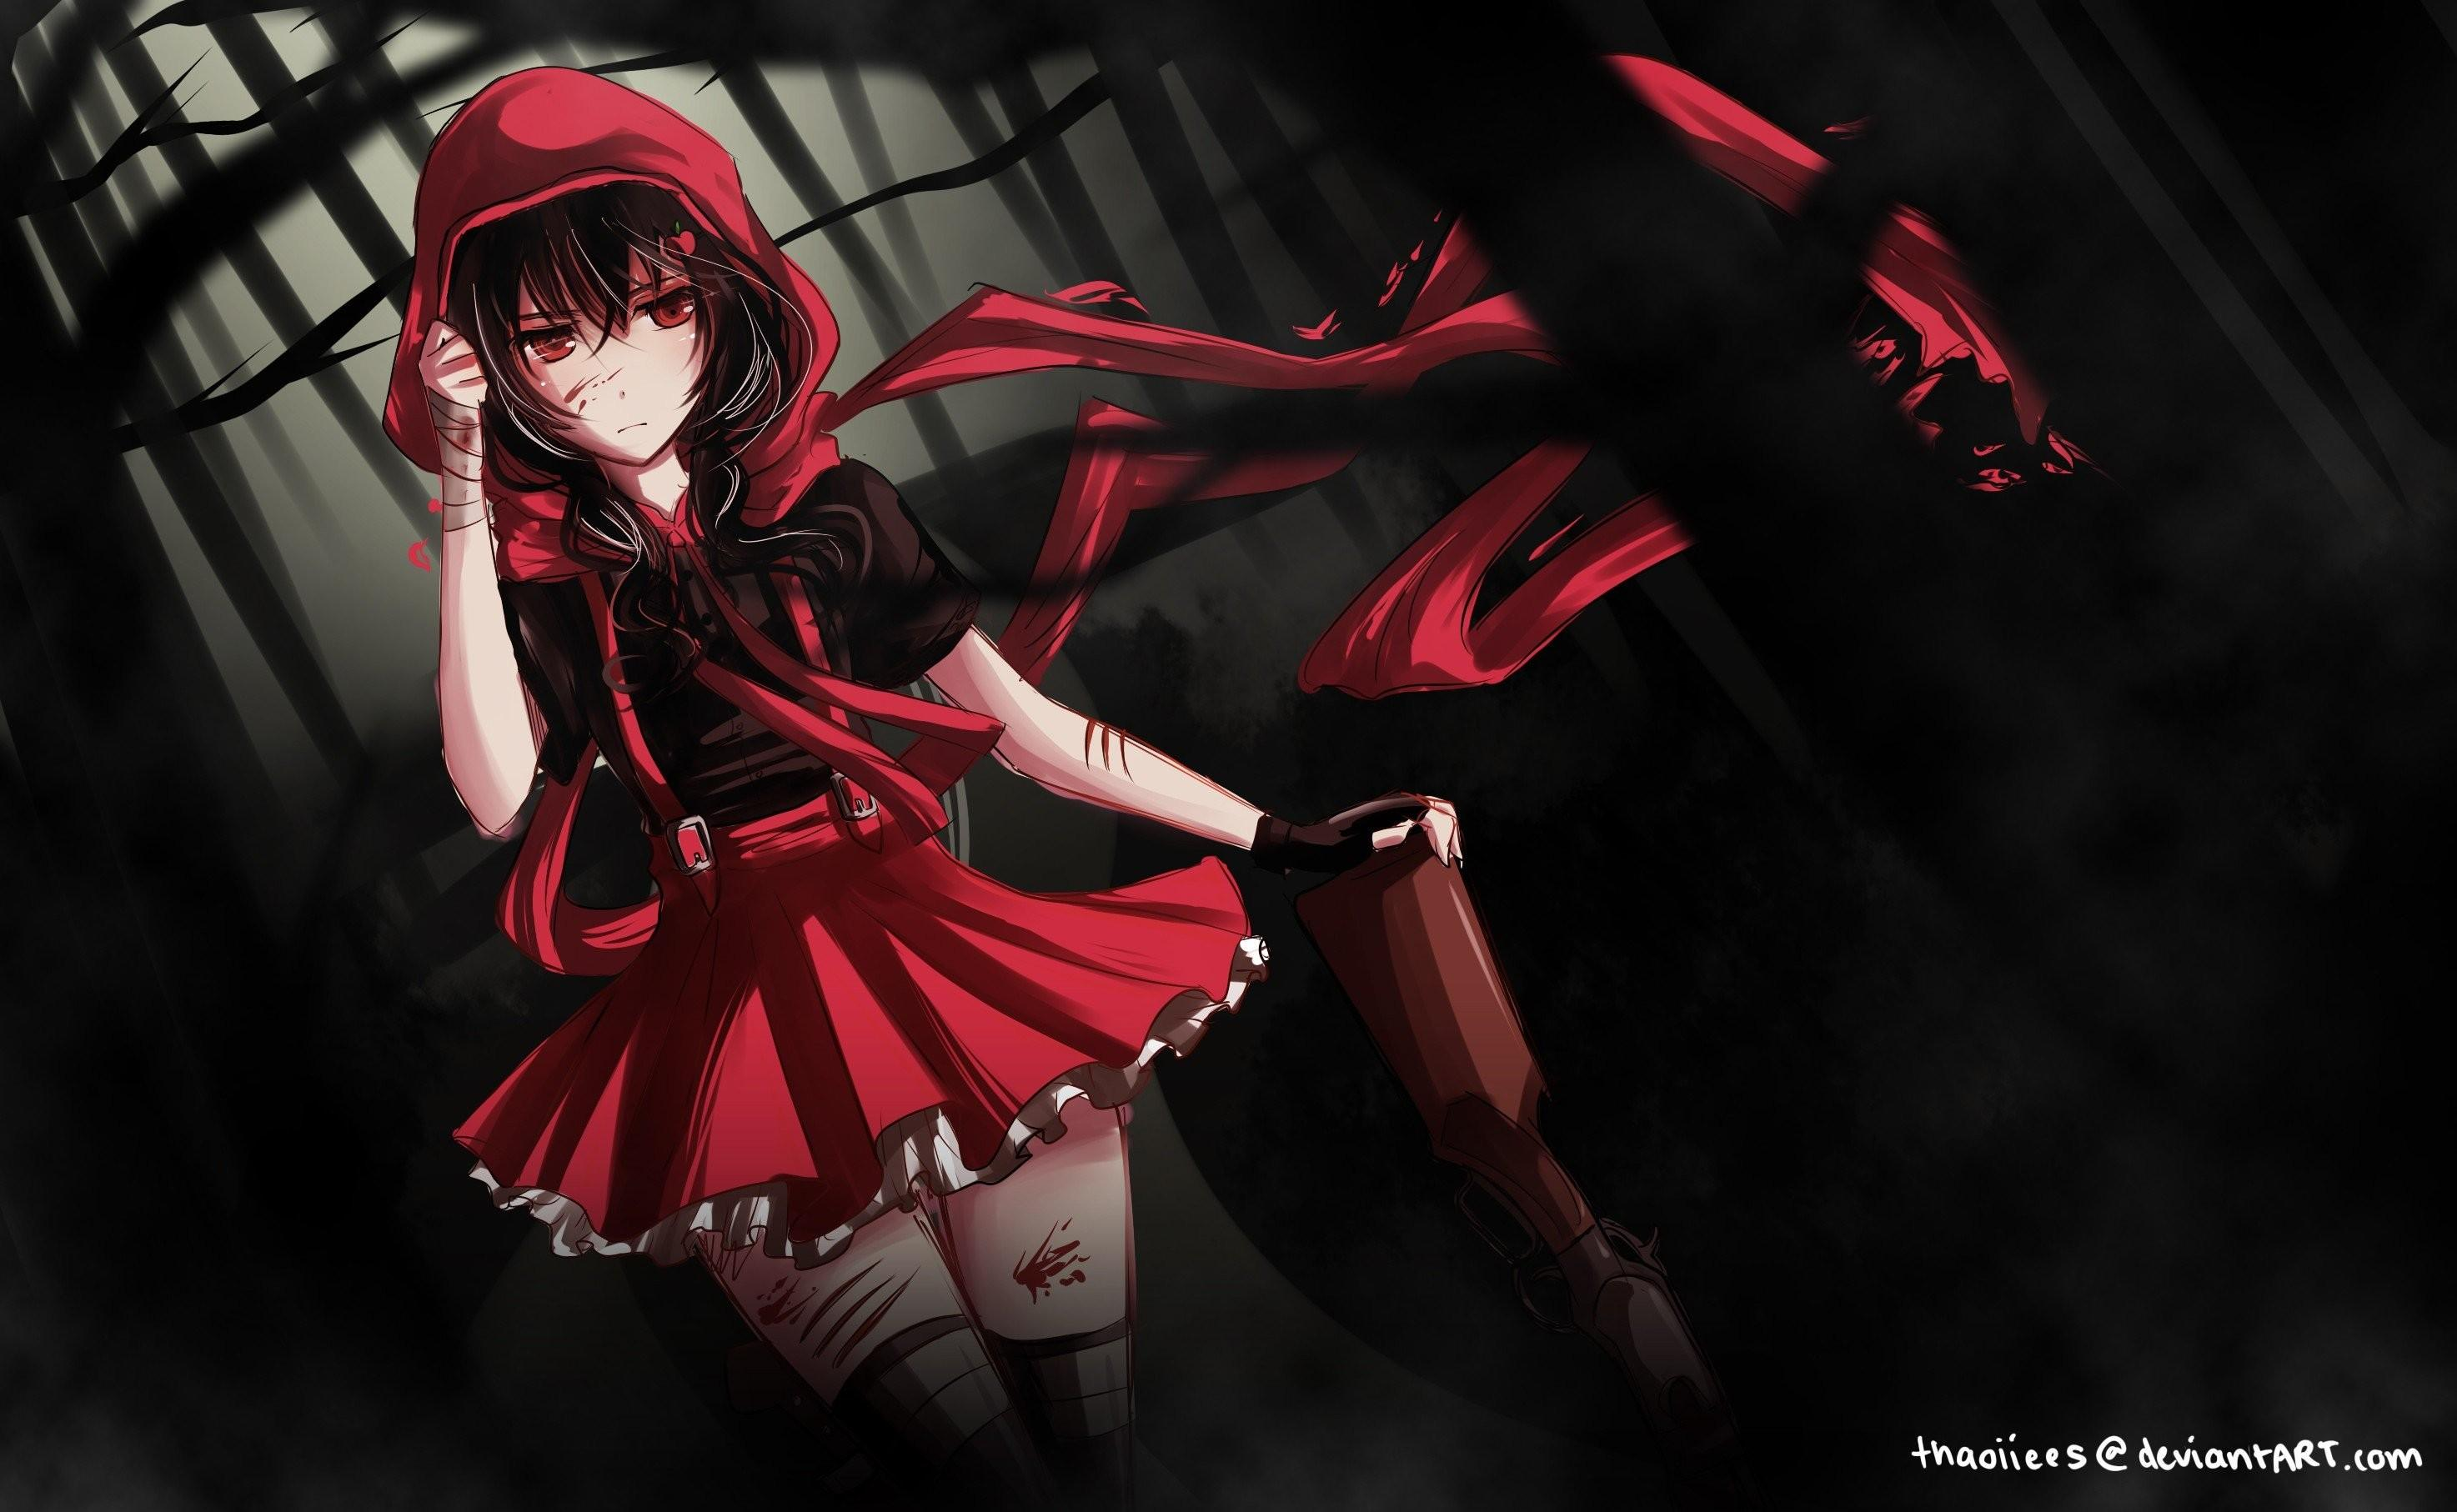 Anime Dark Red Girl Wallpapers Wallpaper Cave